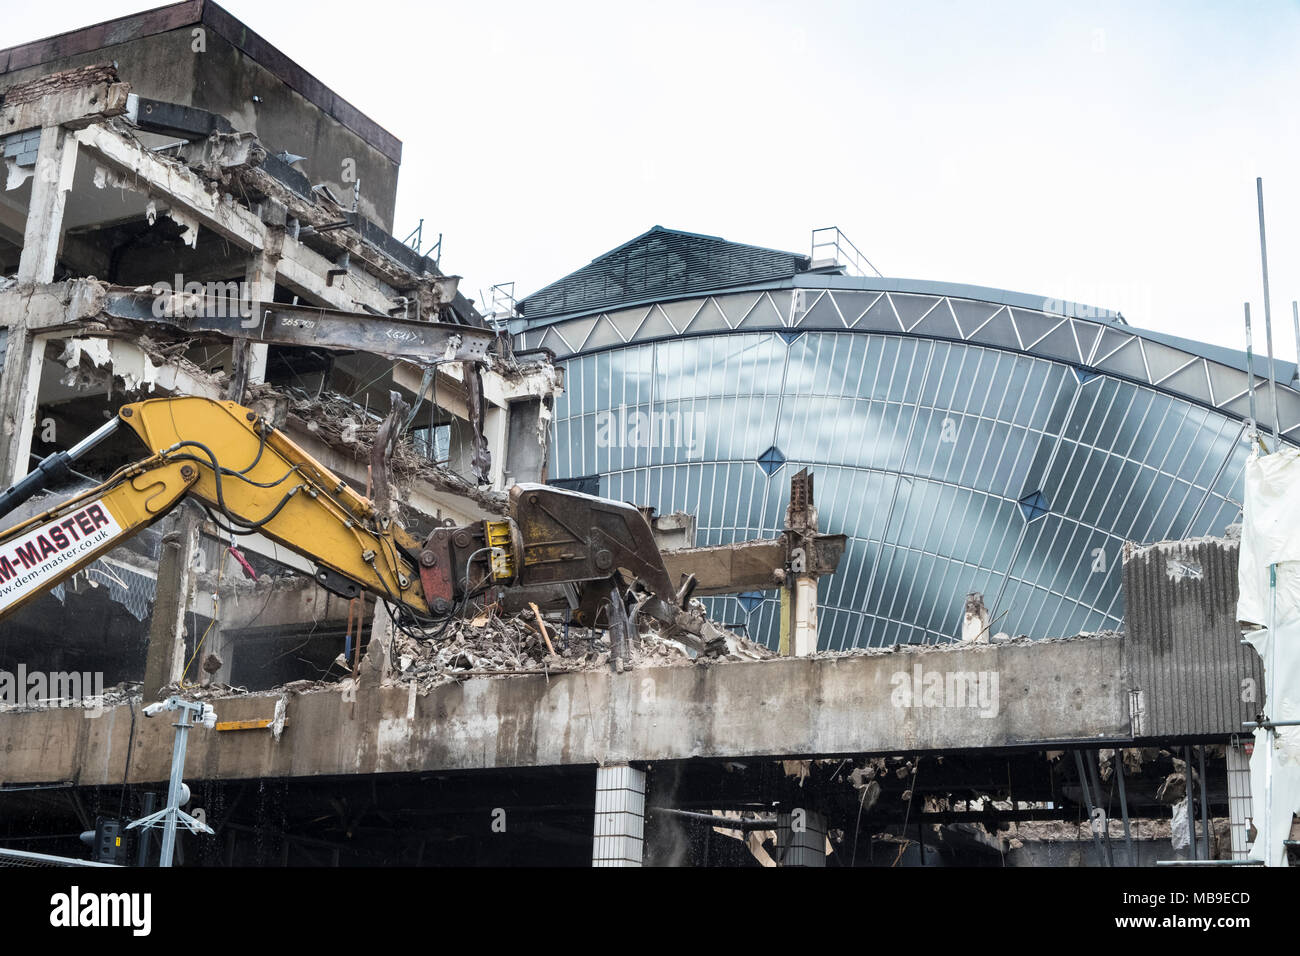 Redevelopment and demolition works at Queen Screen Station on George Square revealing original old glass atrium building , Glasgow, Scotland, United K - Stock Image